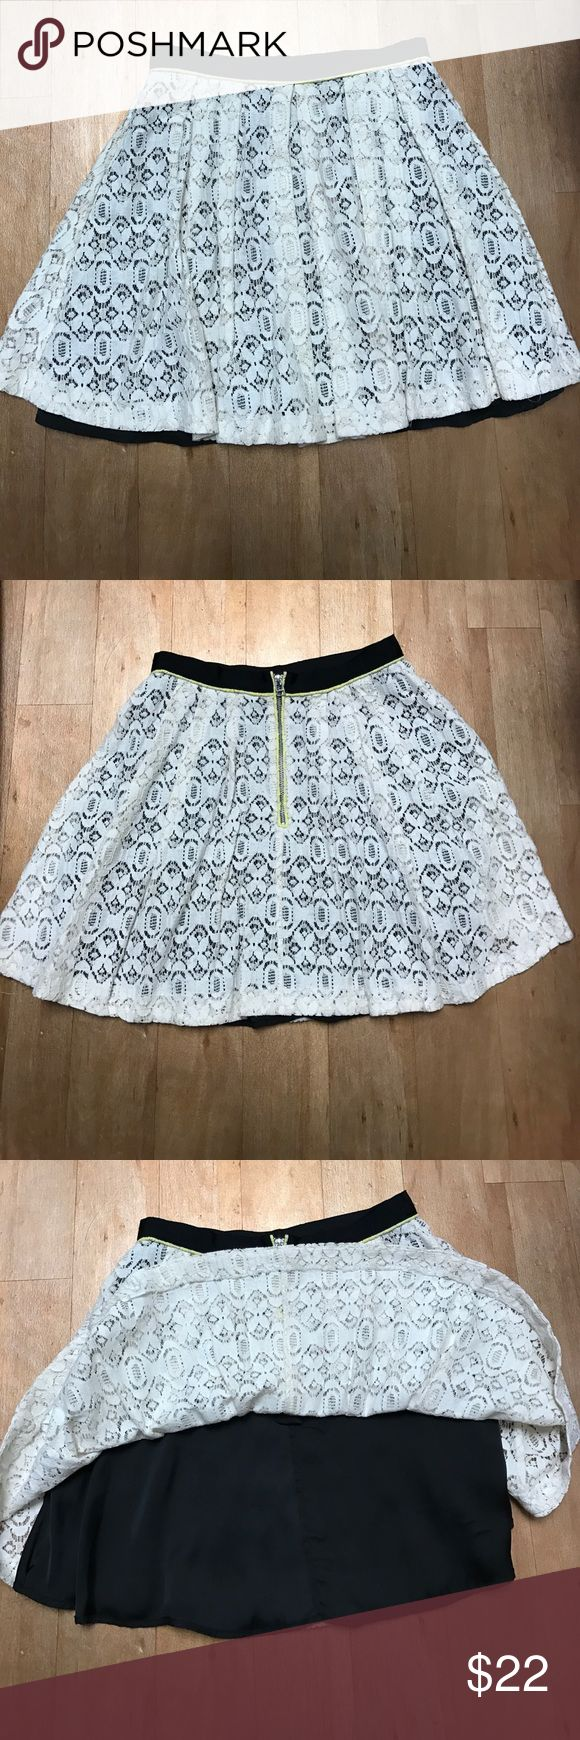 Walter Baker Lace Cream Skirt with Black Lining Walter Baker Lace Cream Skirt with Black Lining. Neon Yellow Detailing. Worn once. Great condition. Size Small. Feel free to make an offer! Walter Baker Skirts